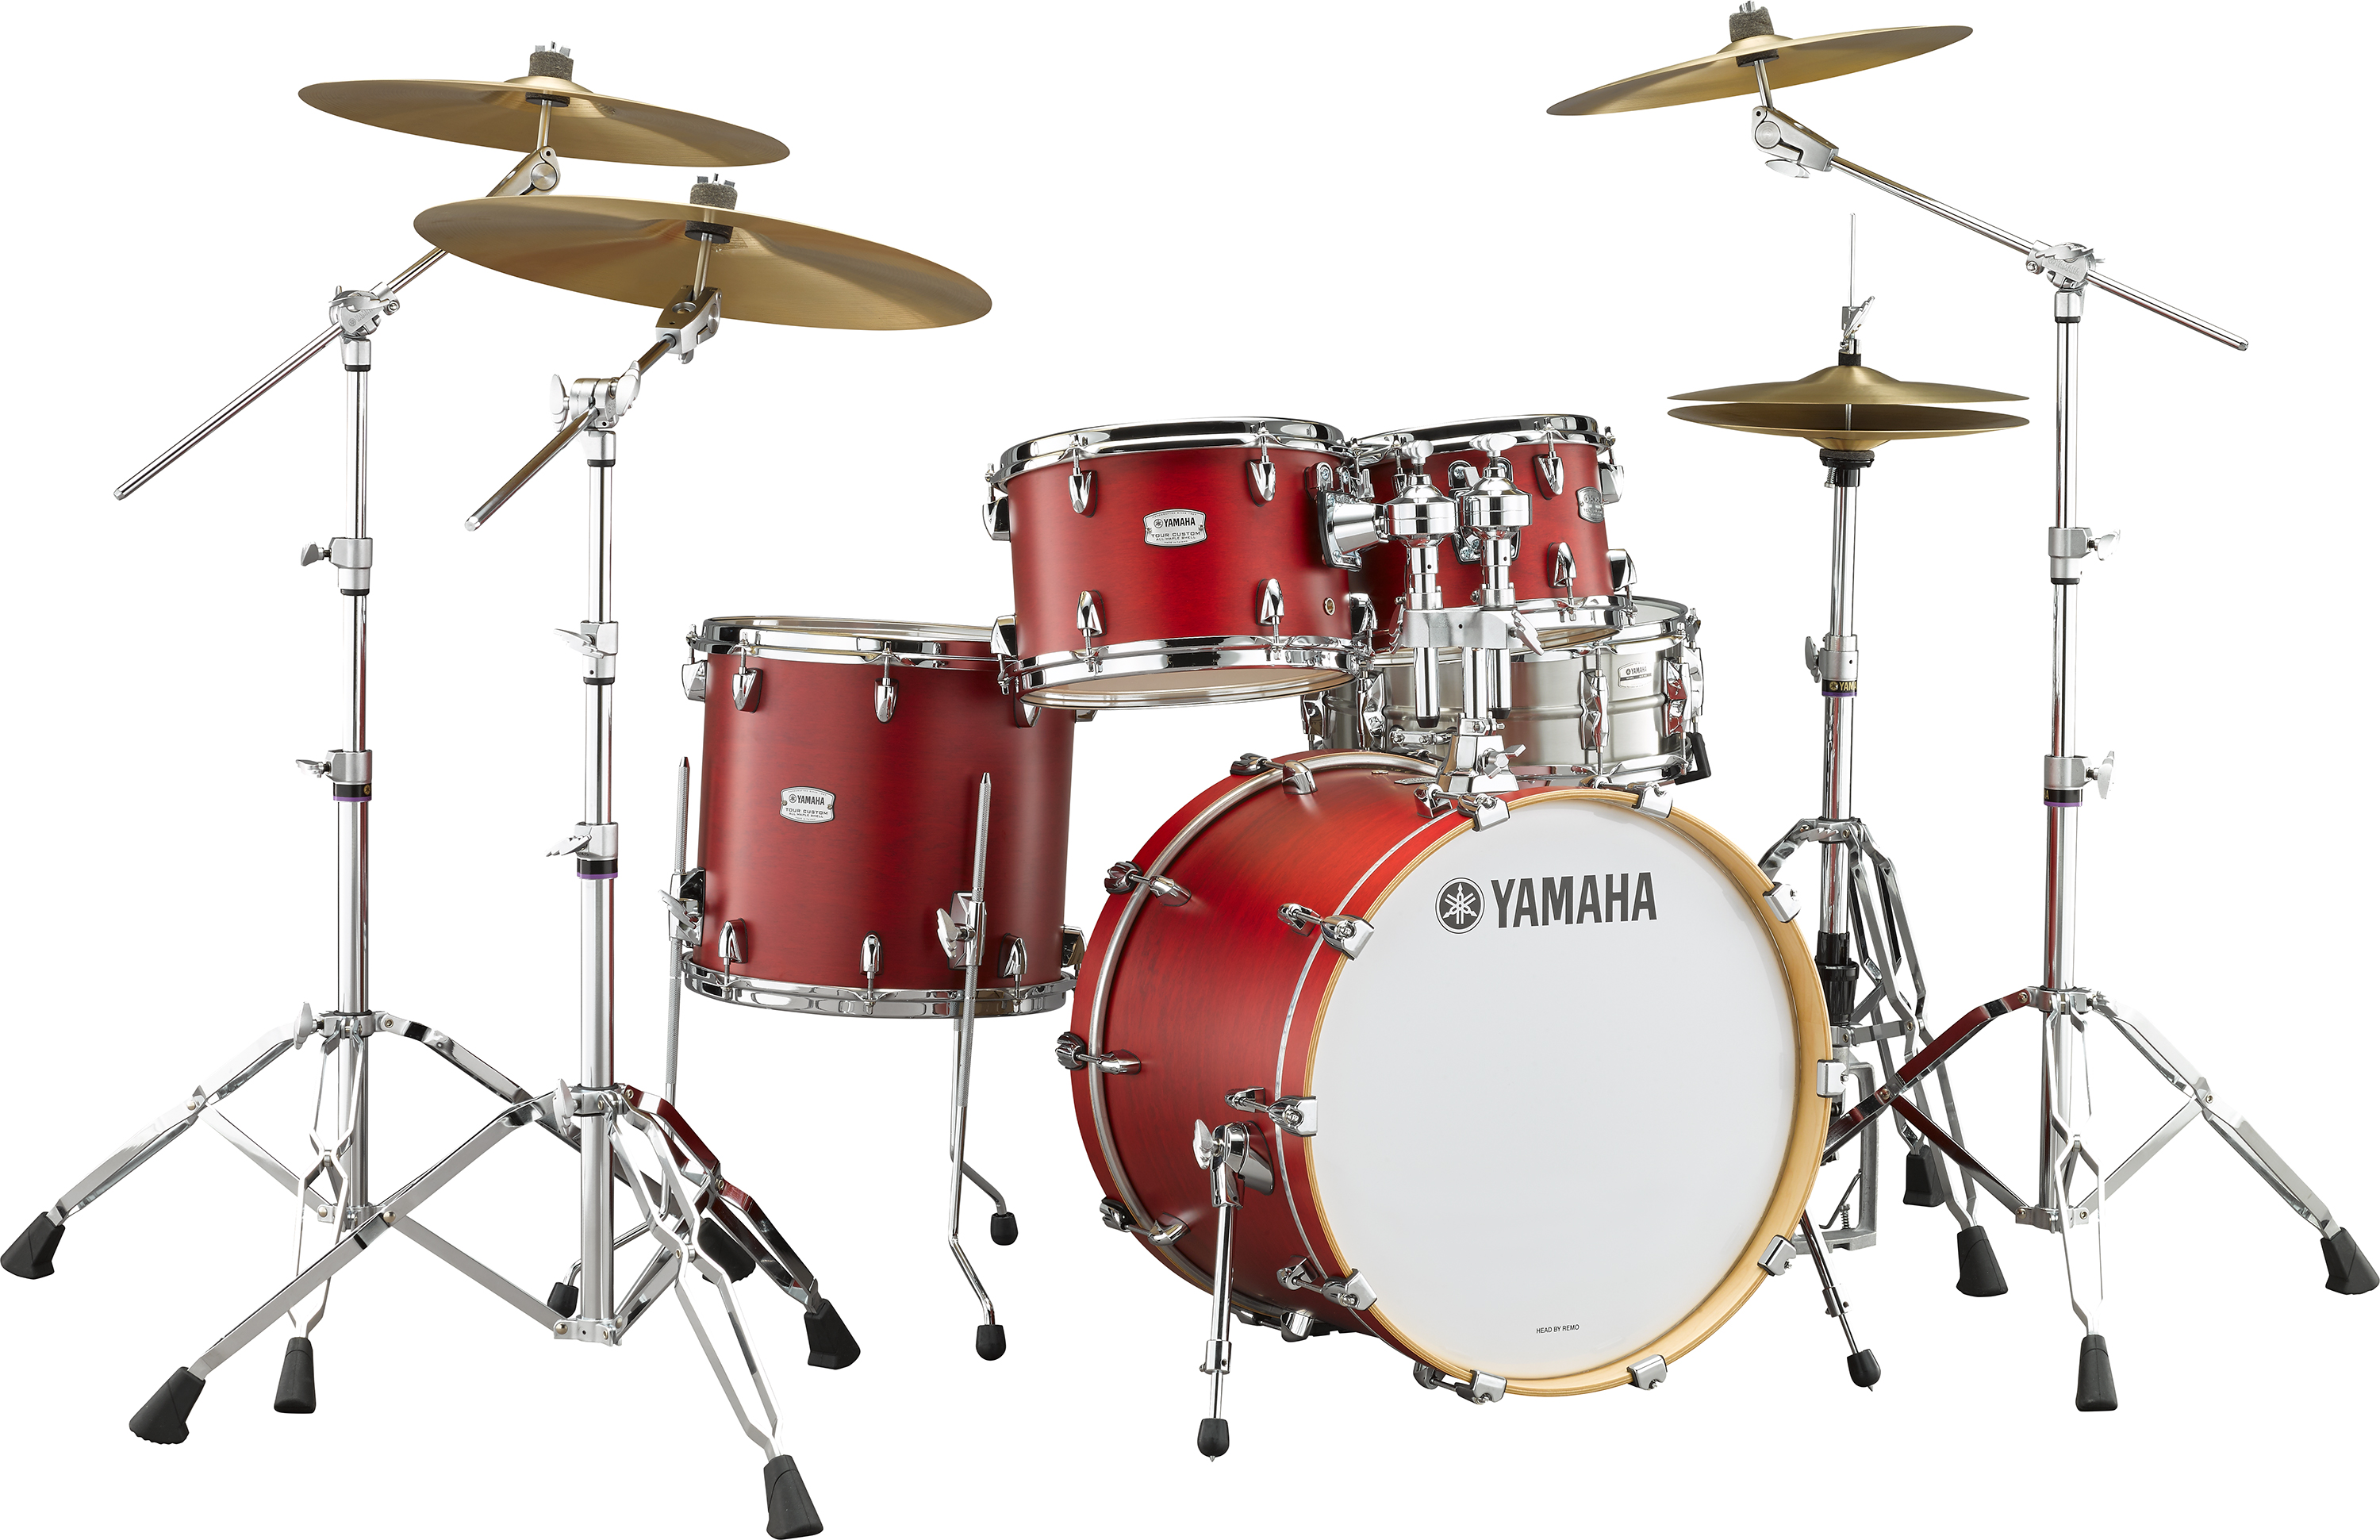 yamaha tour custom maple drum set suits modern working drummers with durability and organic sound. Black Bedroom Furniture Sets. Home Design Ideas